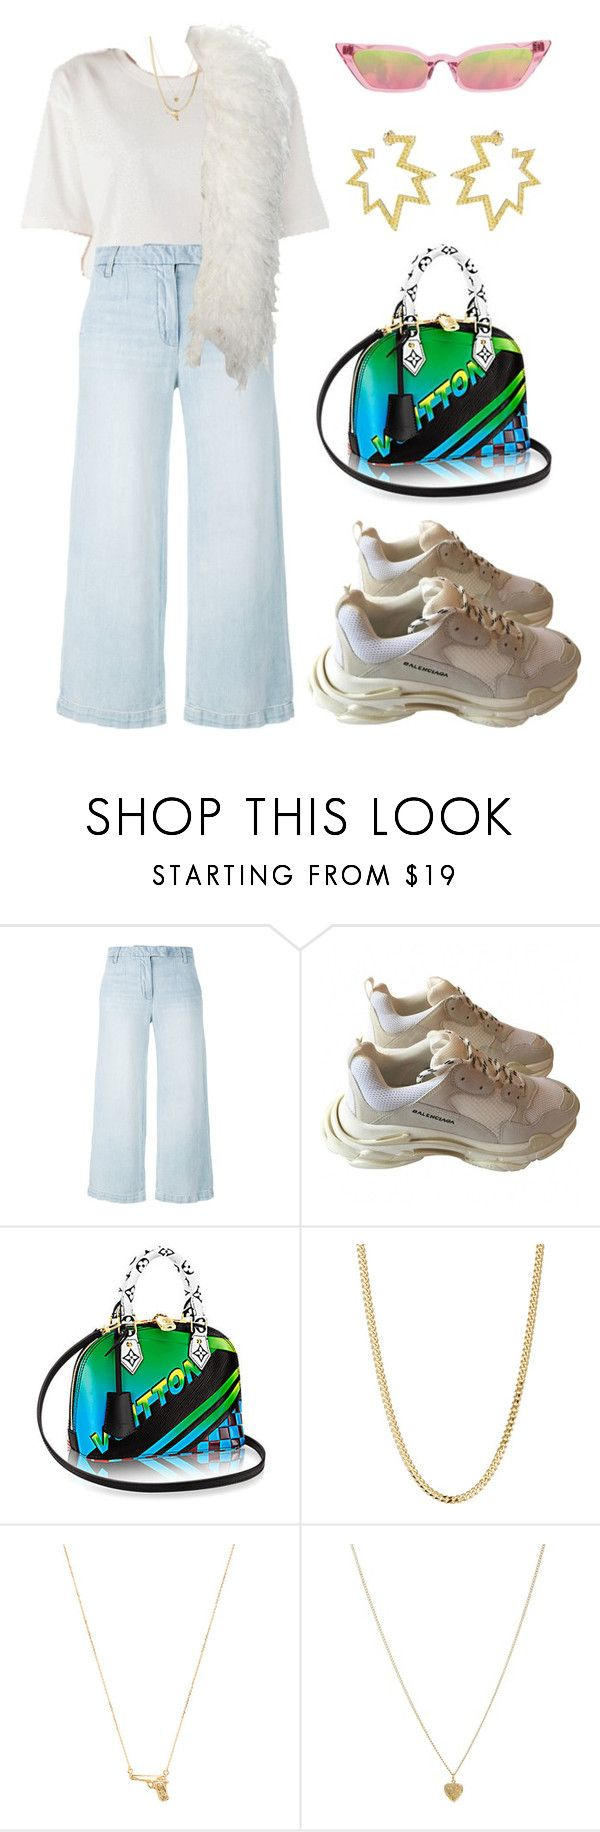 """Untitled #2039"" by lucyshenton ❤ liked on Polyvore featuring Current/Elliott, Balenciaga, Poppy Lissiman, Bianca Pratt, Joolz by Martha Calvo, Susan Caplan Vintage and Sabine Getty"